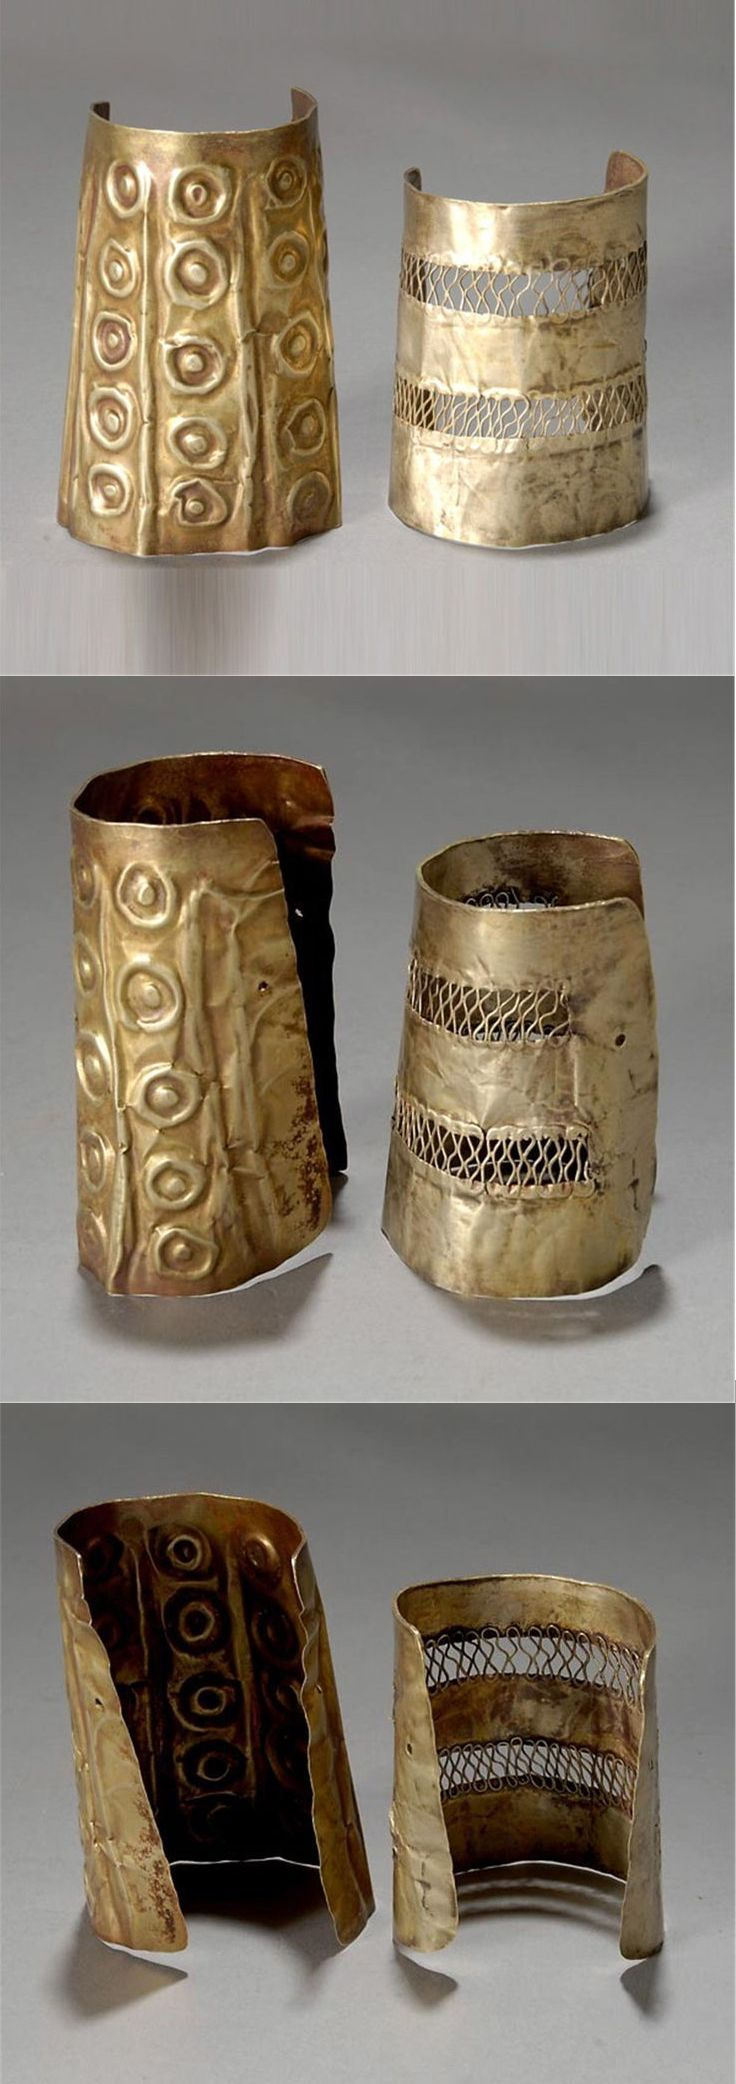 Two ancient ANDEAN wrist guards or cuffs, Moche or related people, Peru, circa 400 - 1100 A.D. Gold and silver. One with embossed rows of circle and dot pattern, the other with two filigree bands. Largest 4 1/4 x 3 inches.